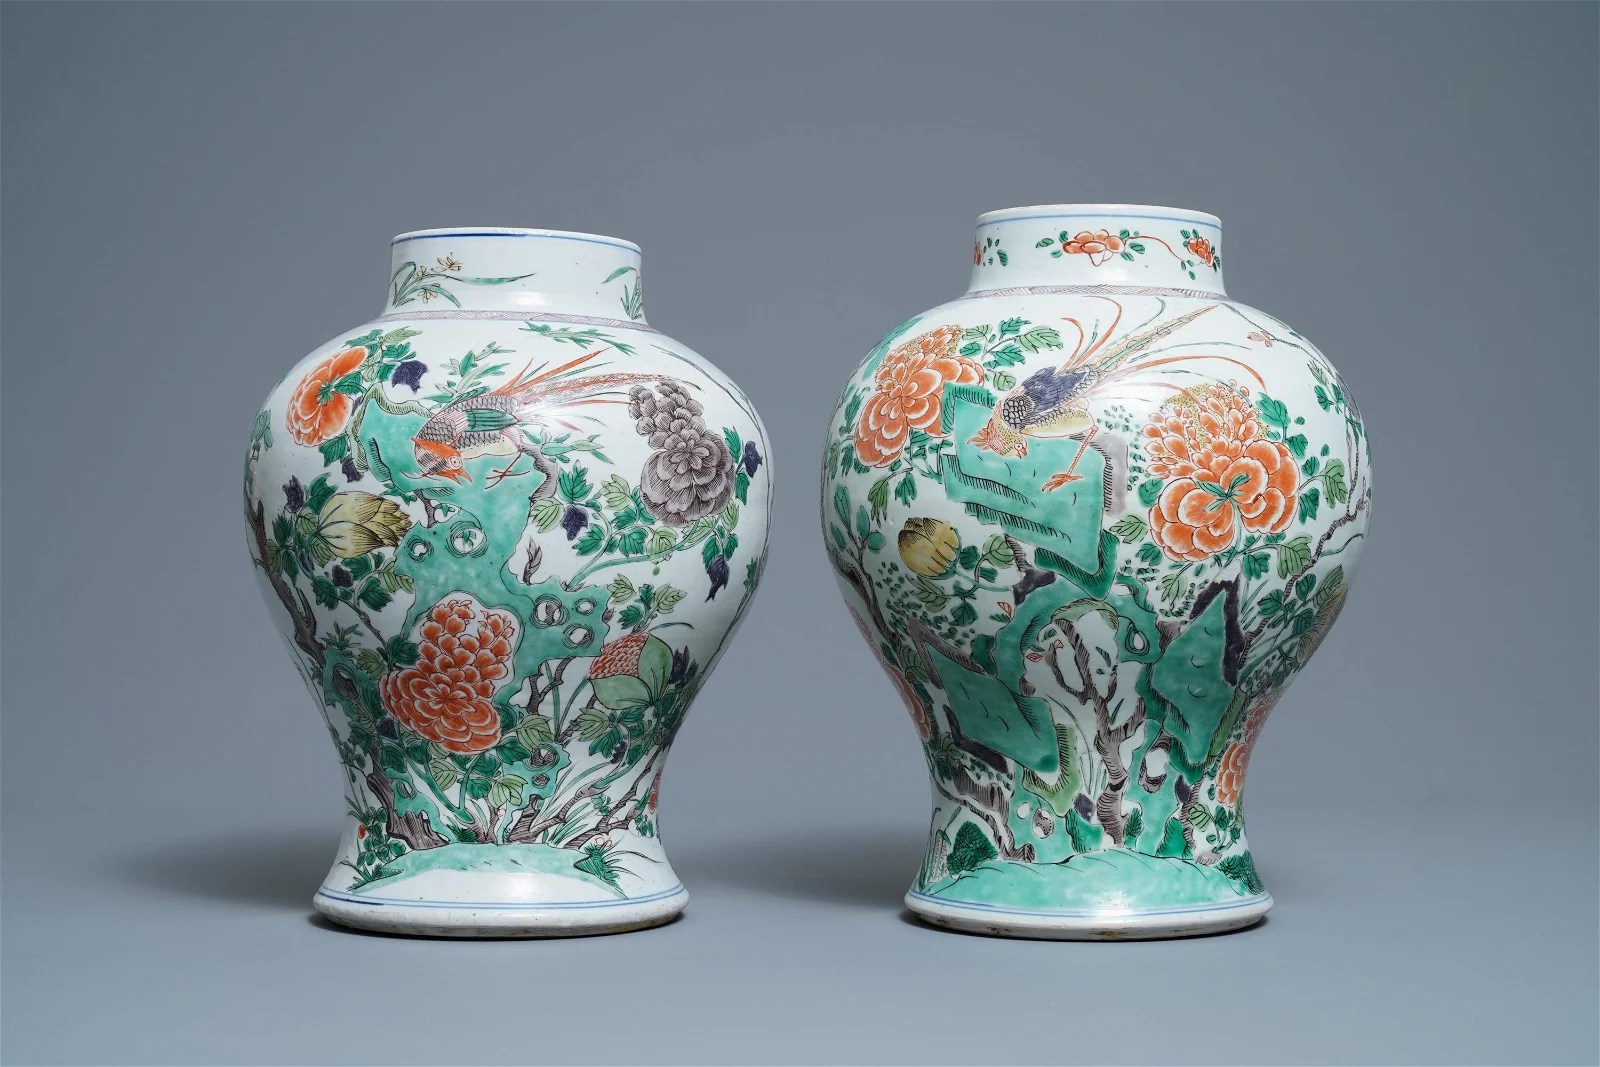 A pair of Chinese famille verte vases with birds and